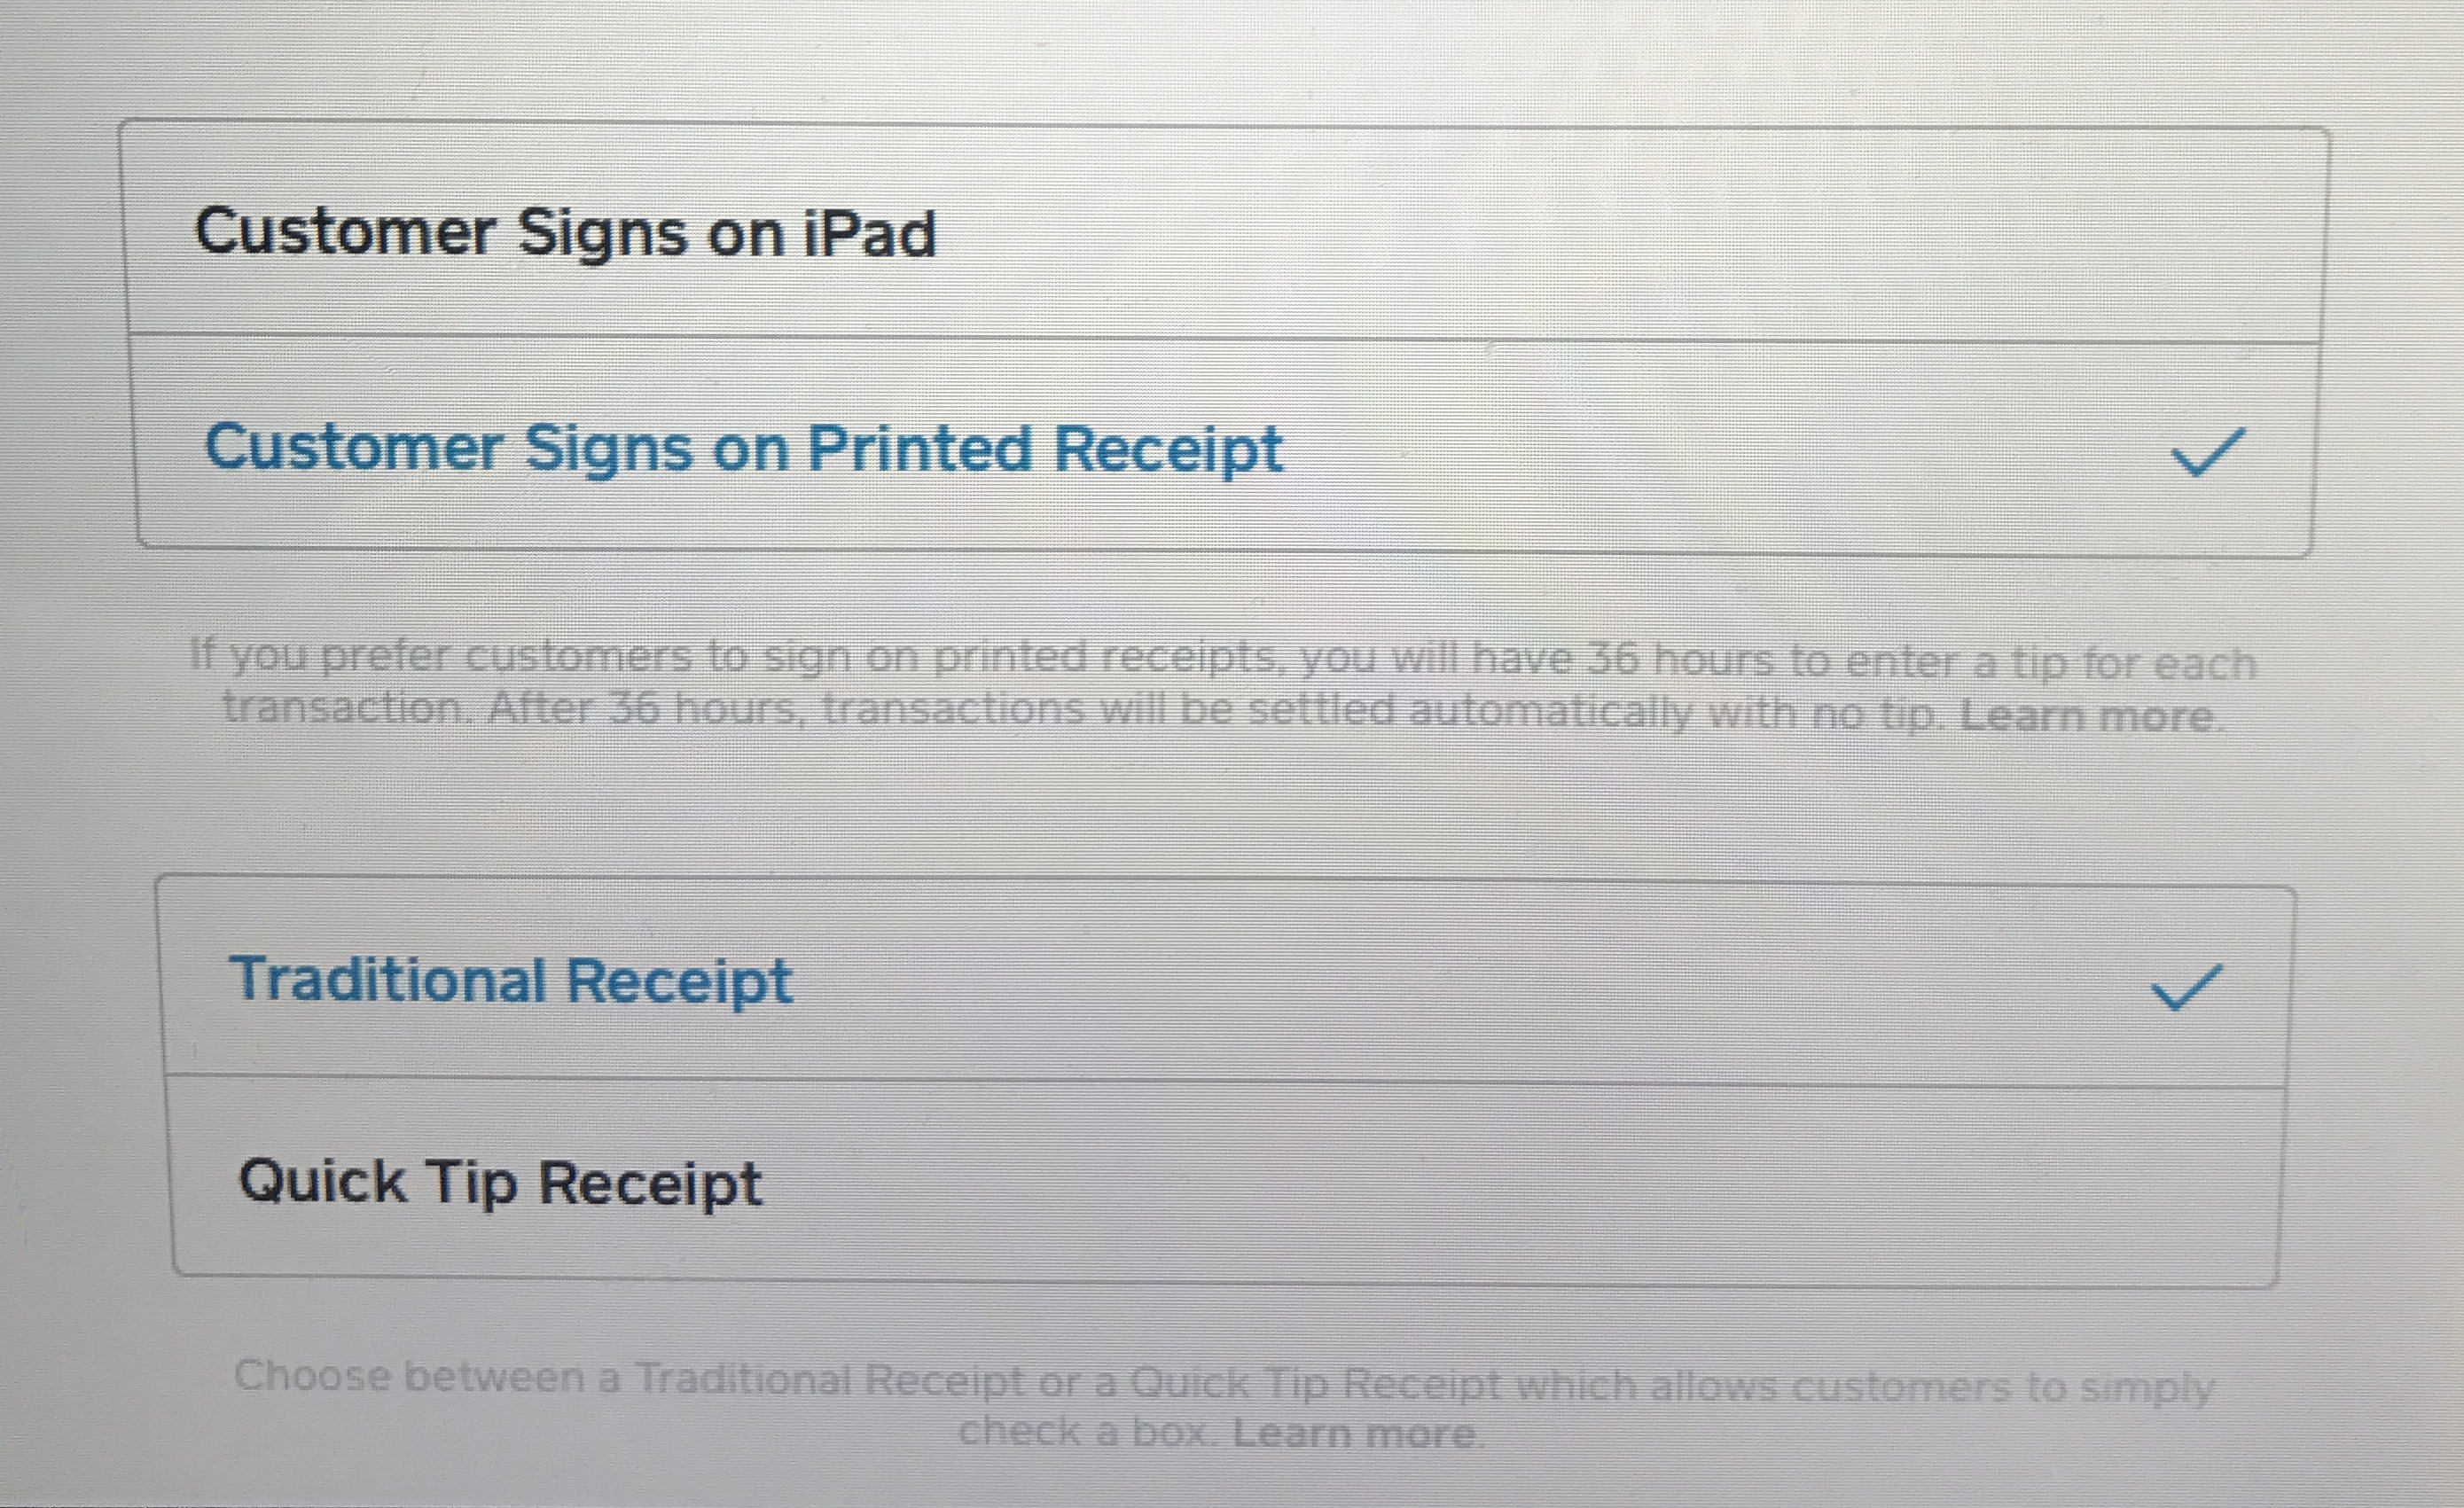 print receipt with signature the seller community